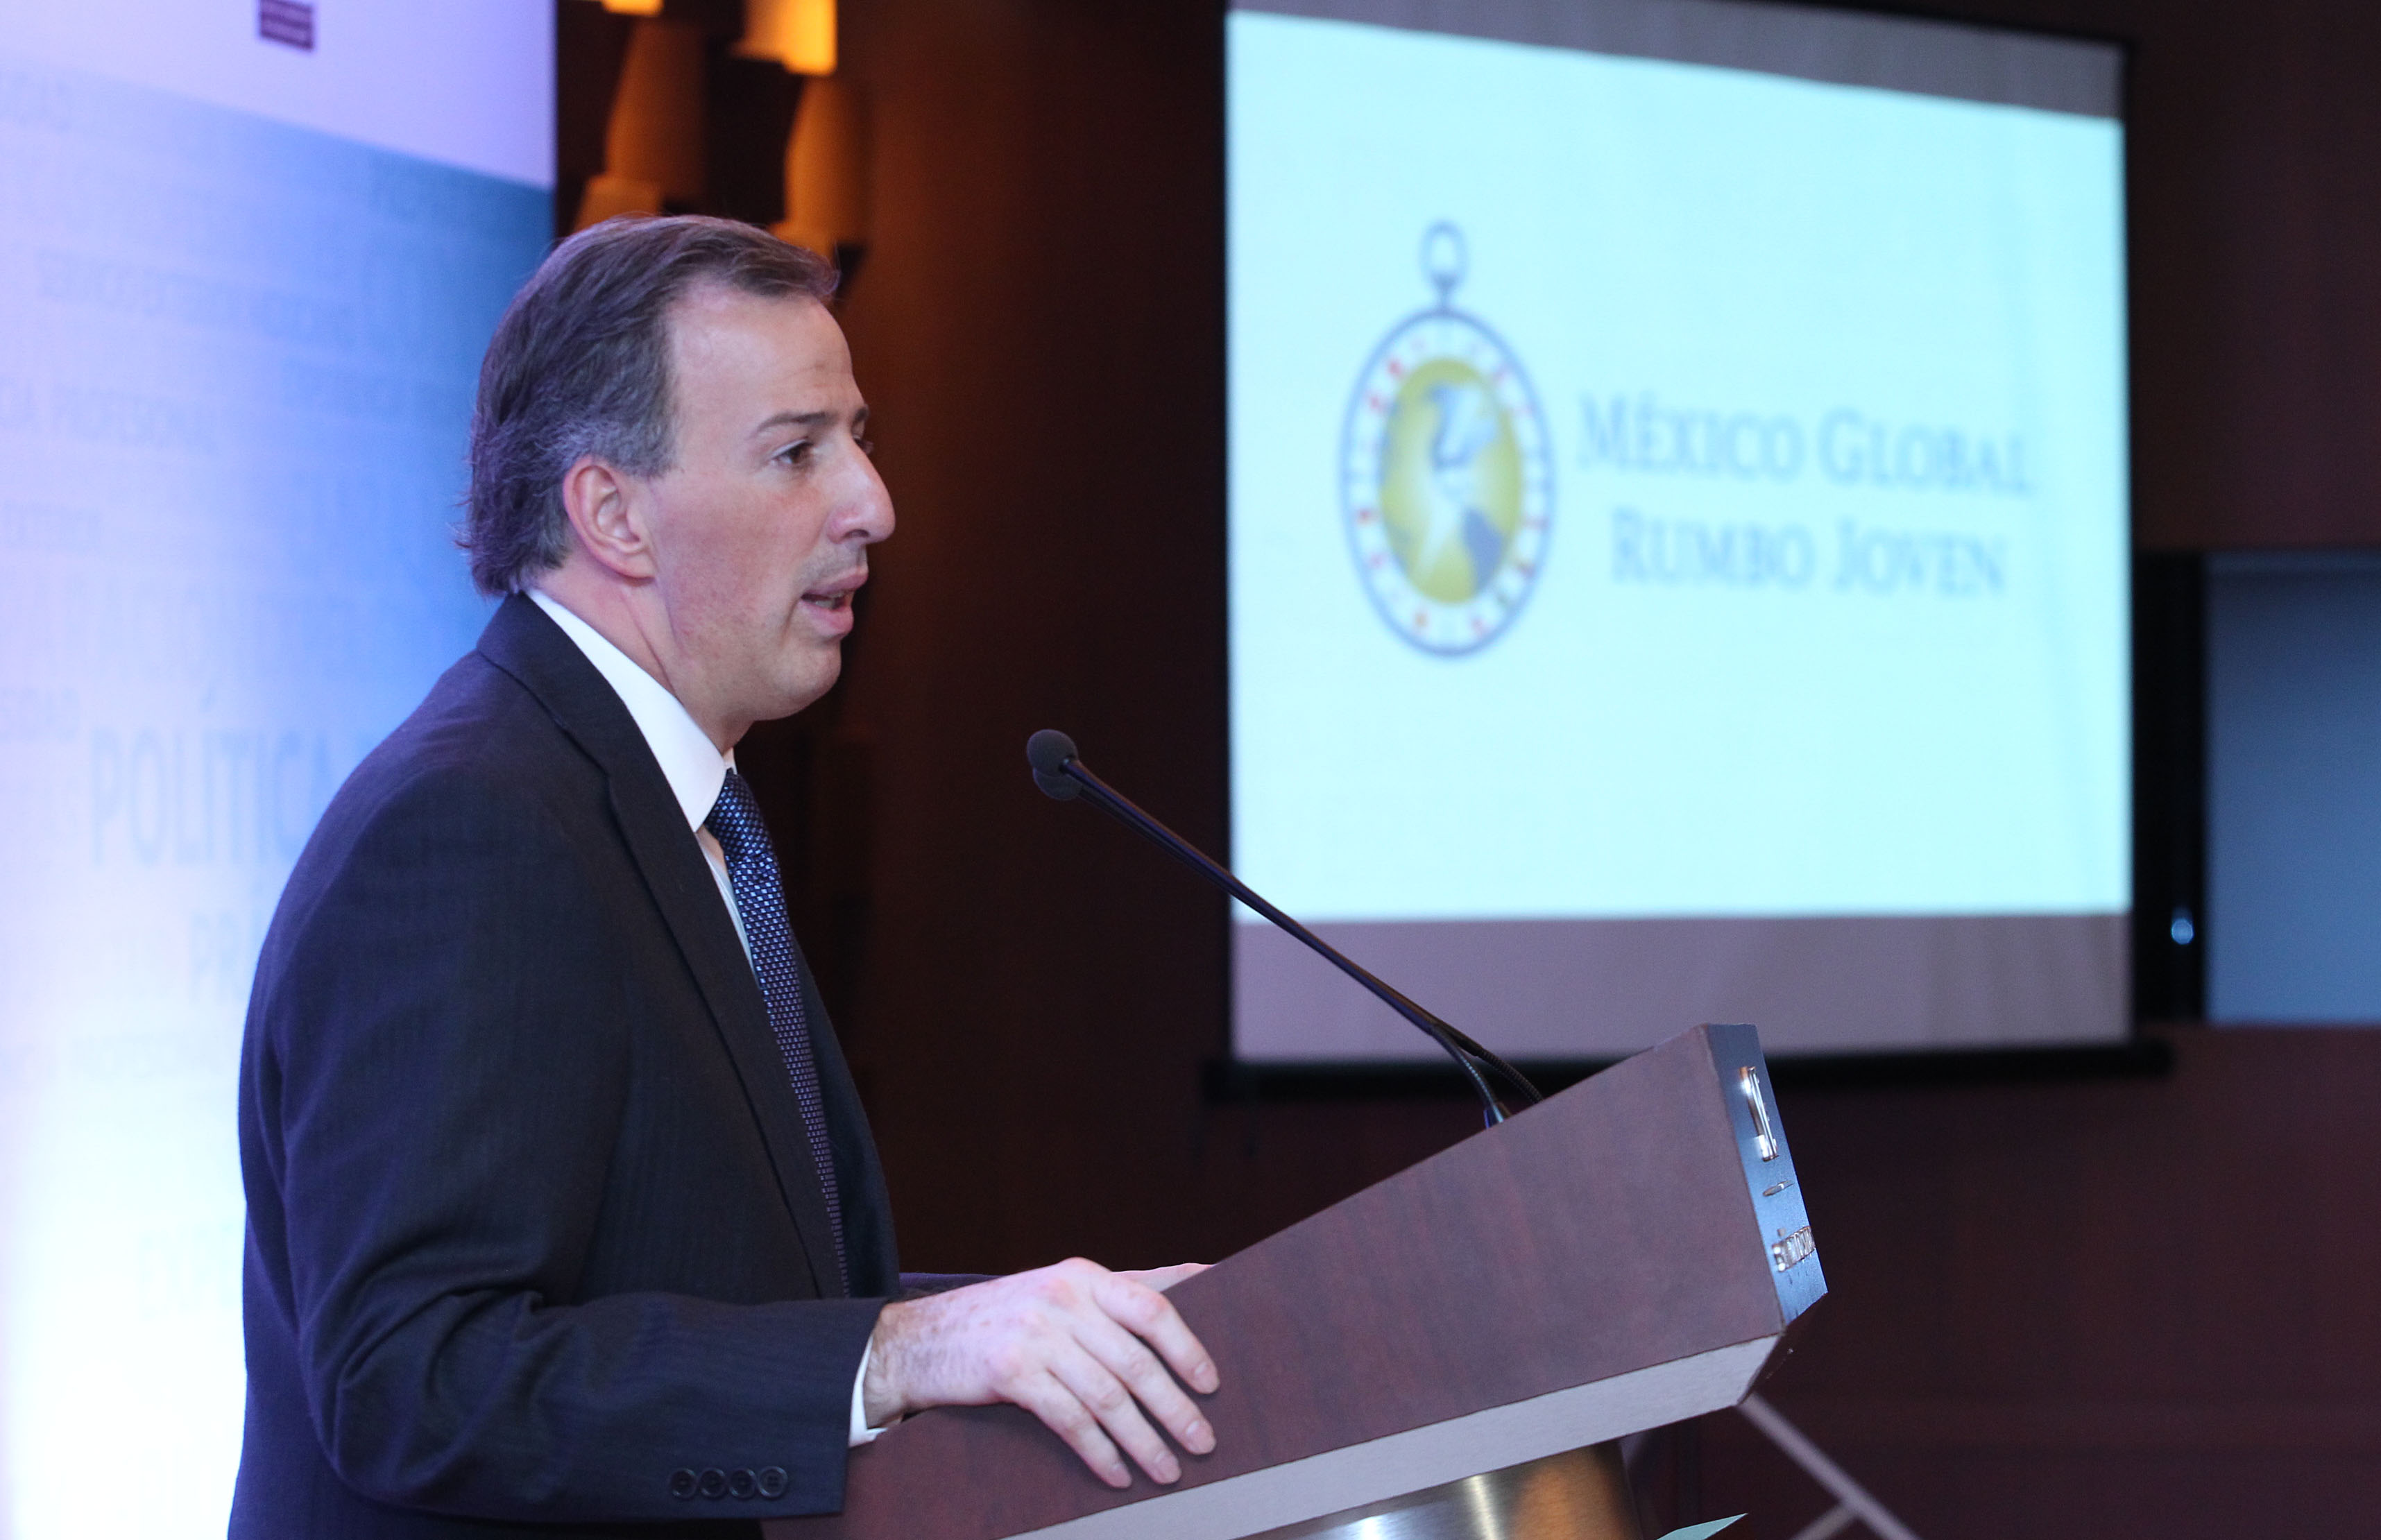 FOTO 2 Canciller Jos  Antonio Meade en el evento M xico Global Rumbo Jovenjpg